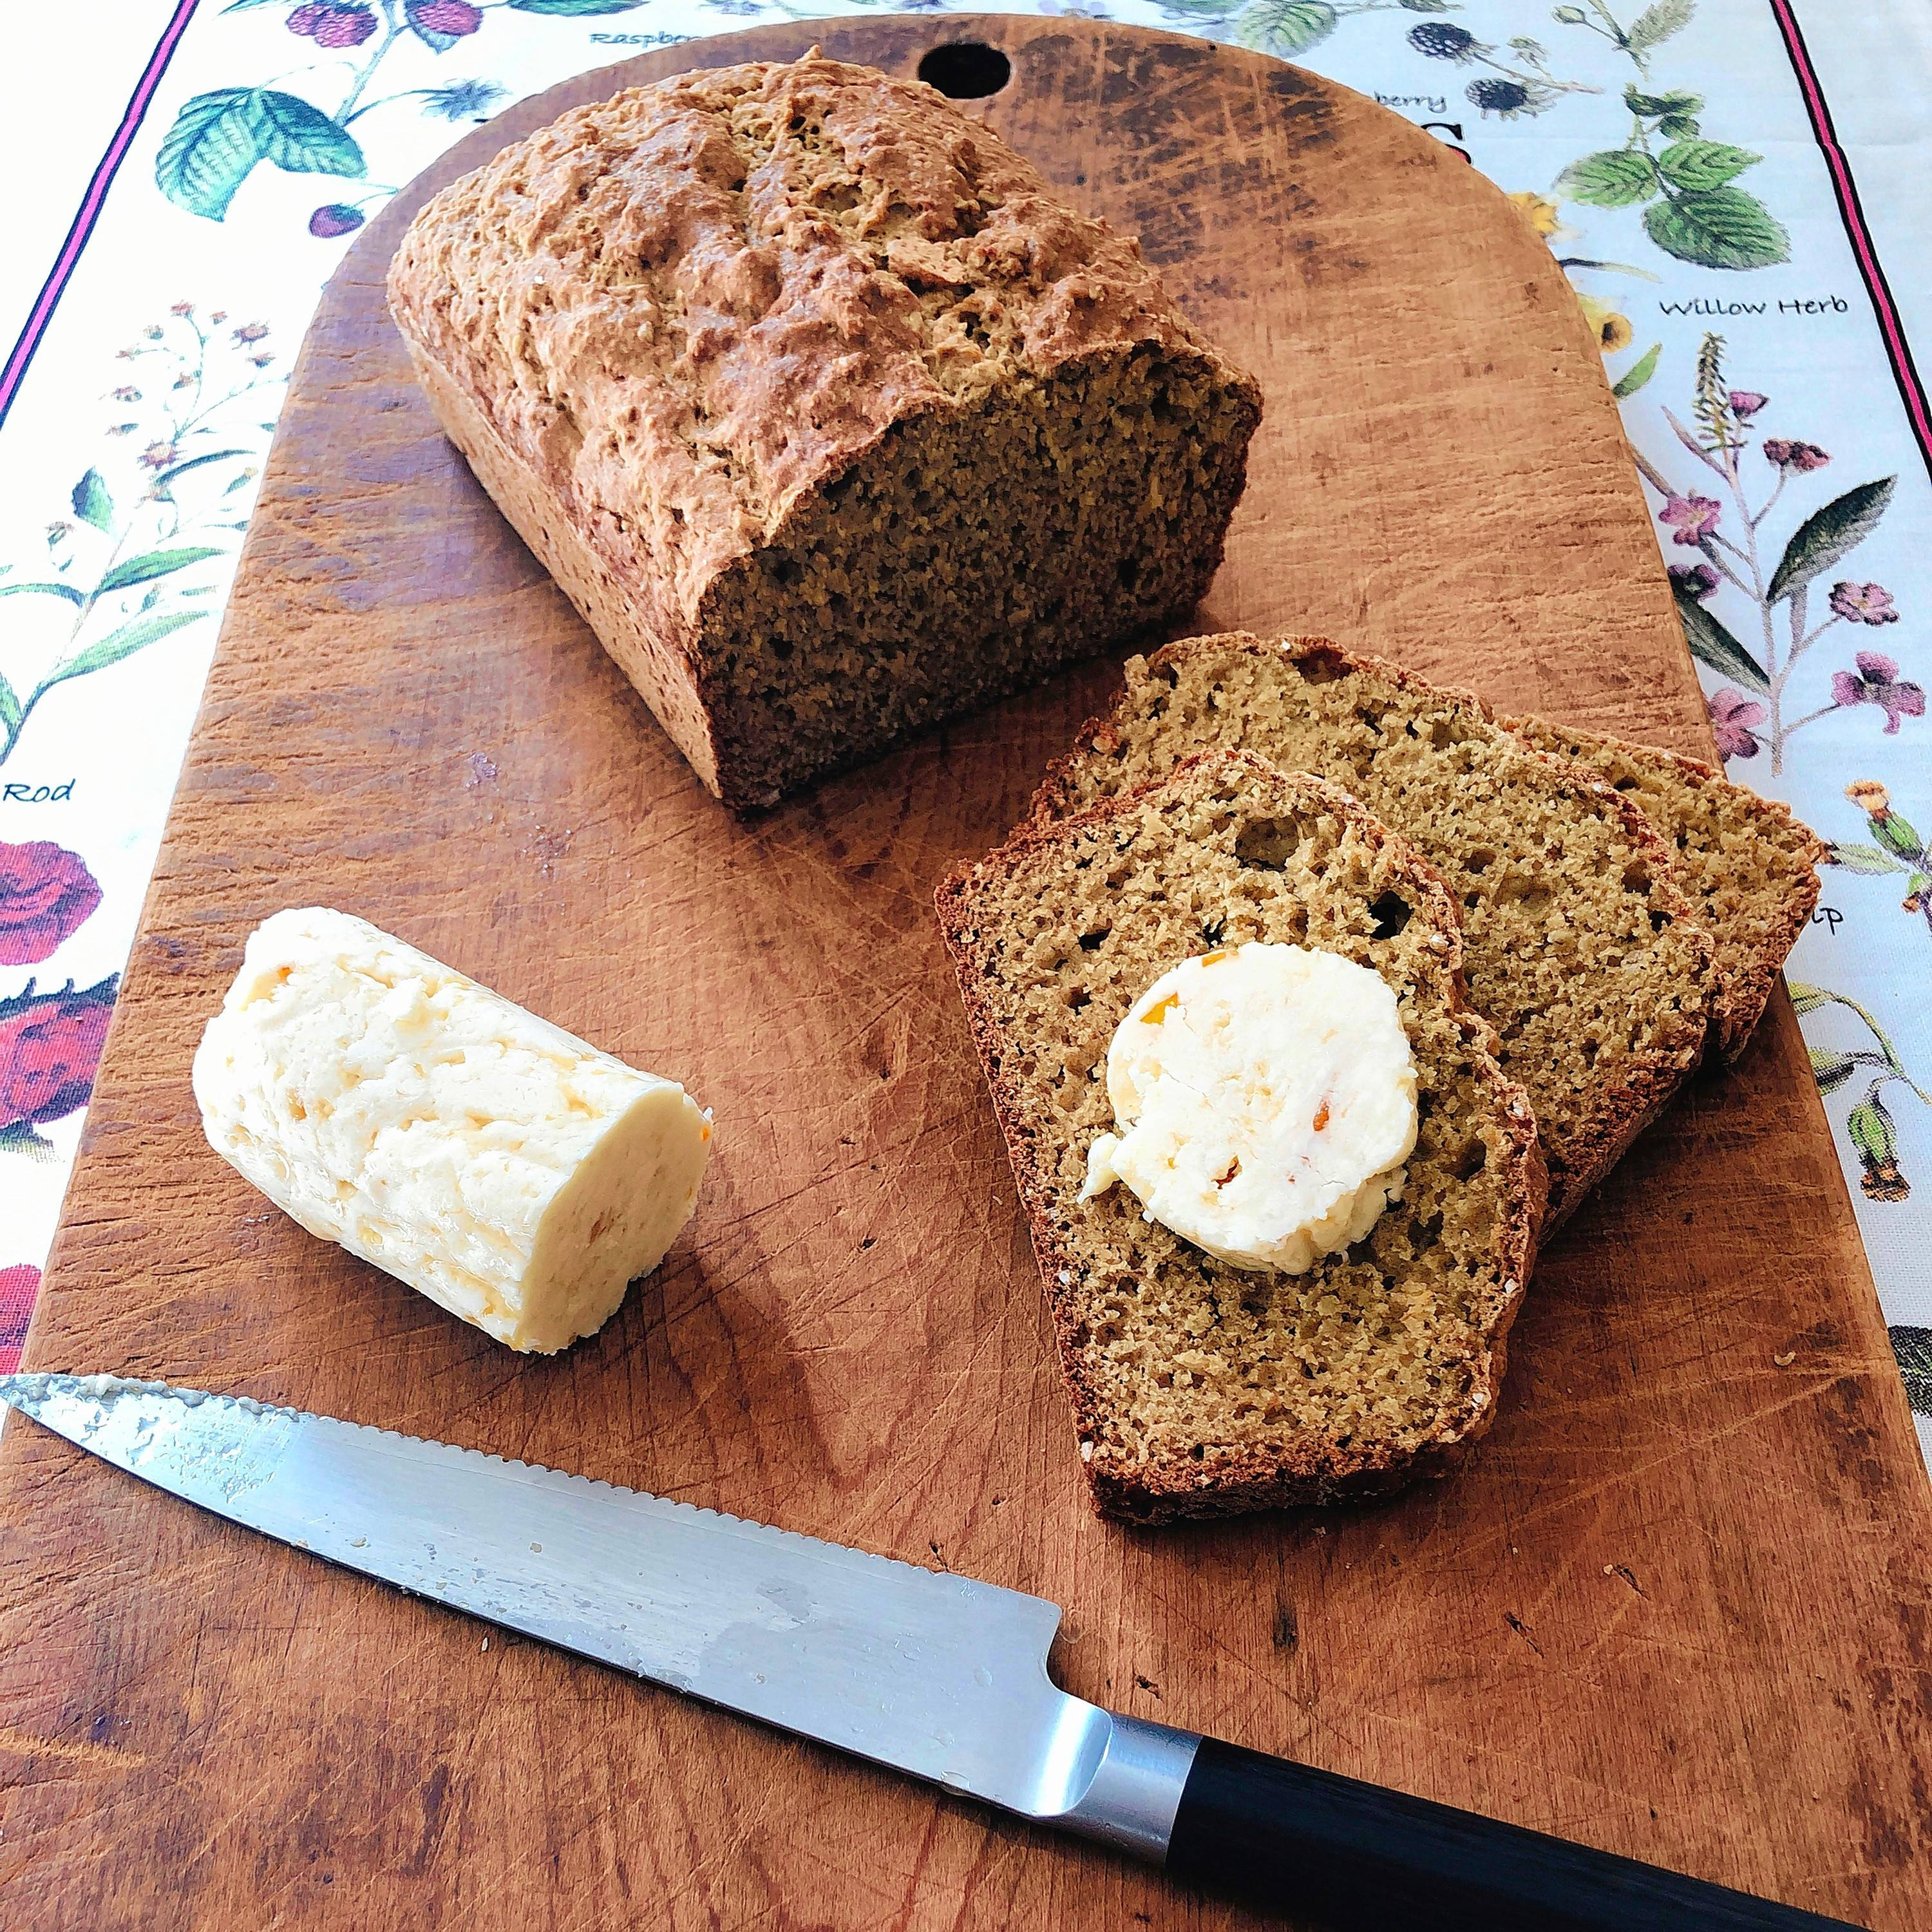 Here's a nubby whole-wheat quick bread with whisky butter